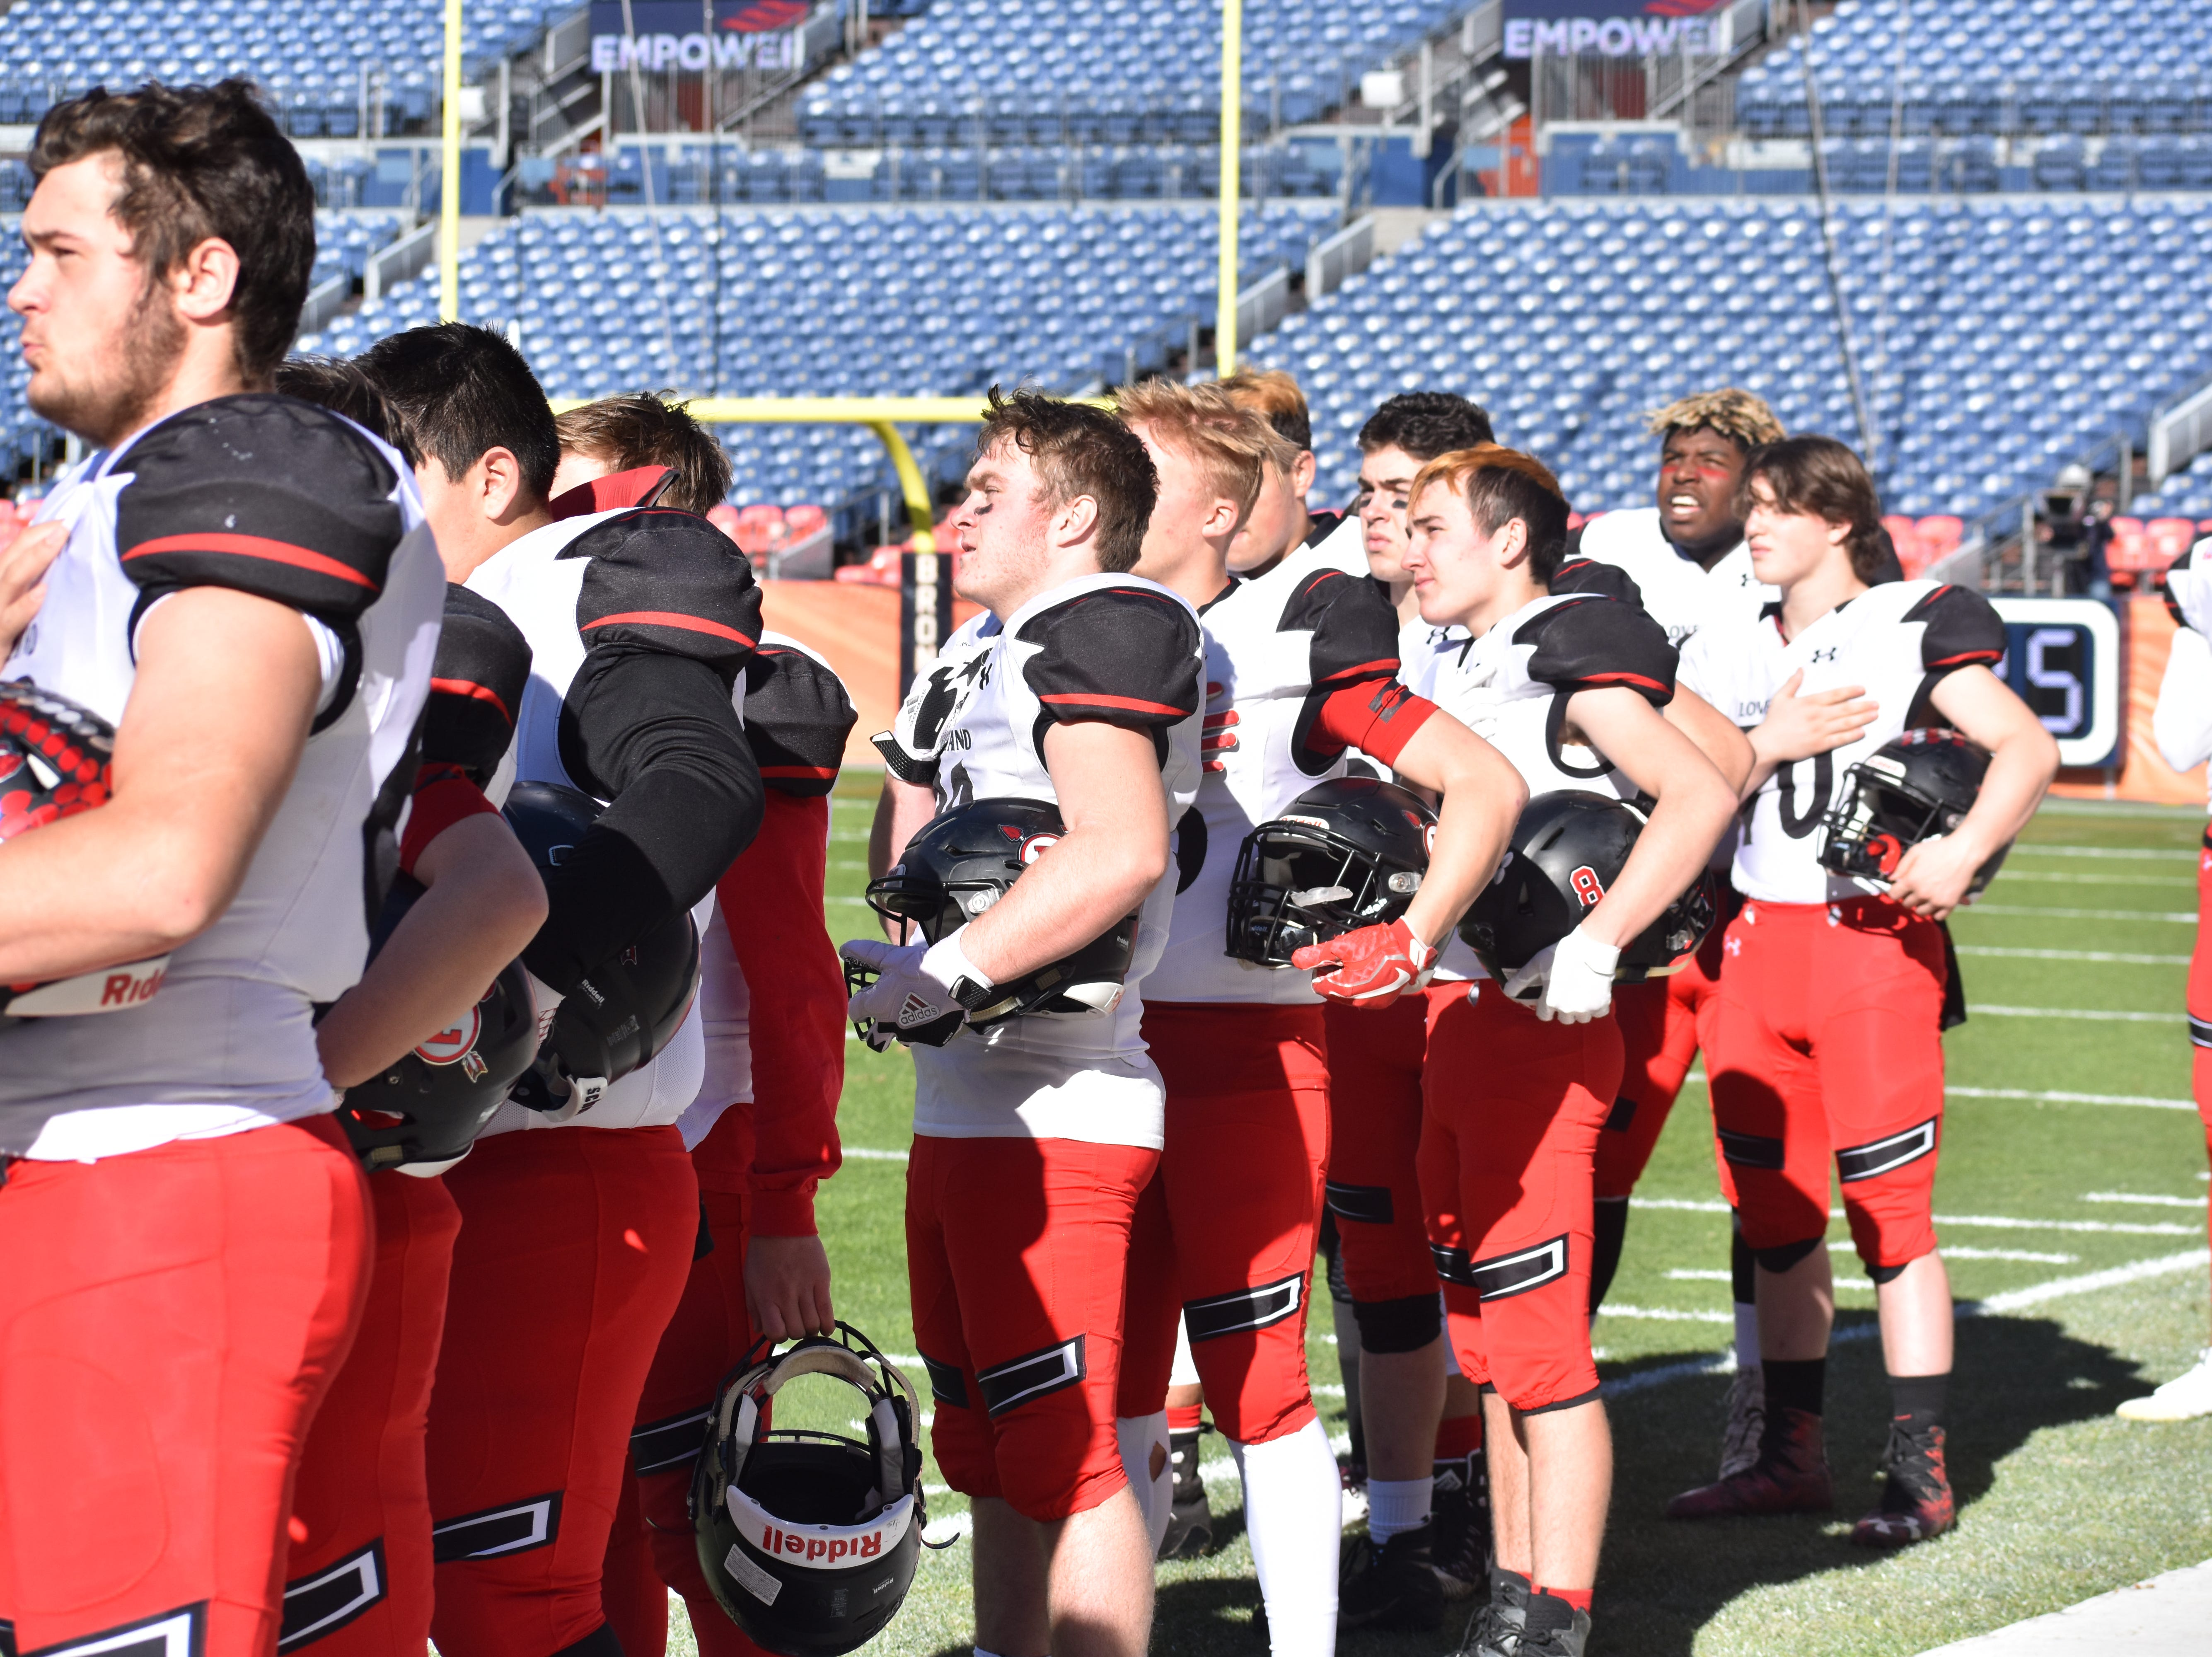 Loveland High football players look on during the singing of the national anthem prior to Saturday's Class 4A state championship game at Broncos Stadium at Mile High in Denver.